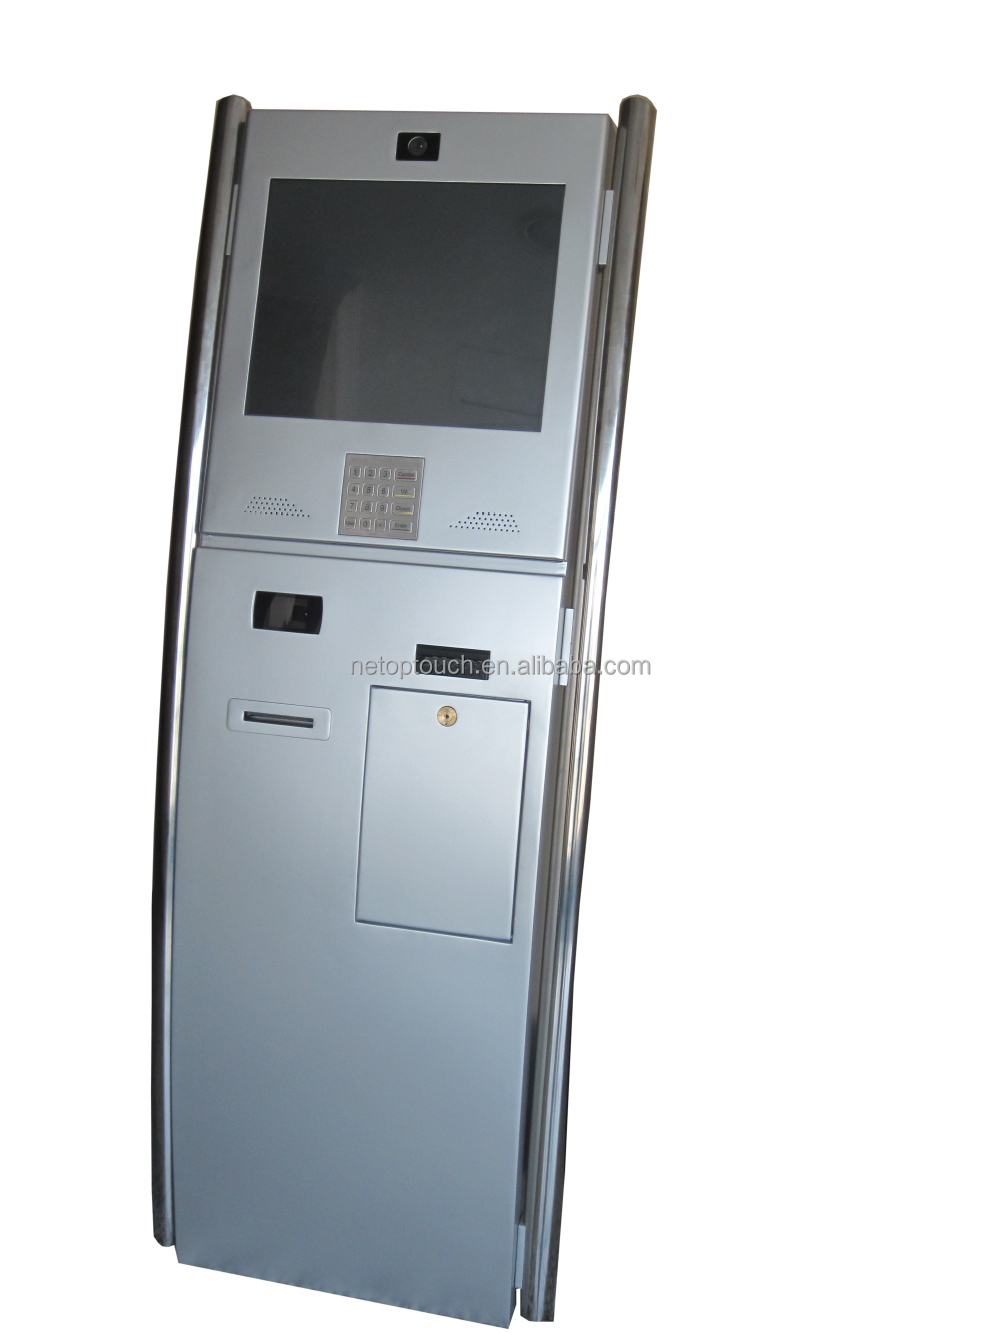 All-in-one bill acceptor cash payment Kiosk for bank